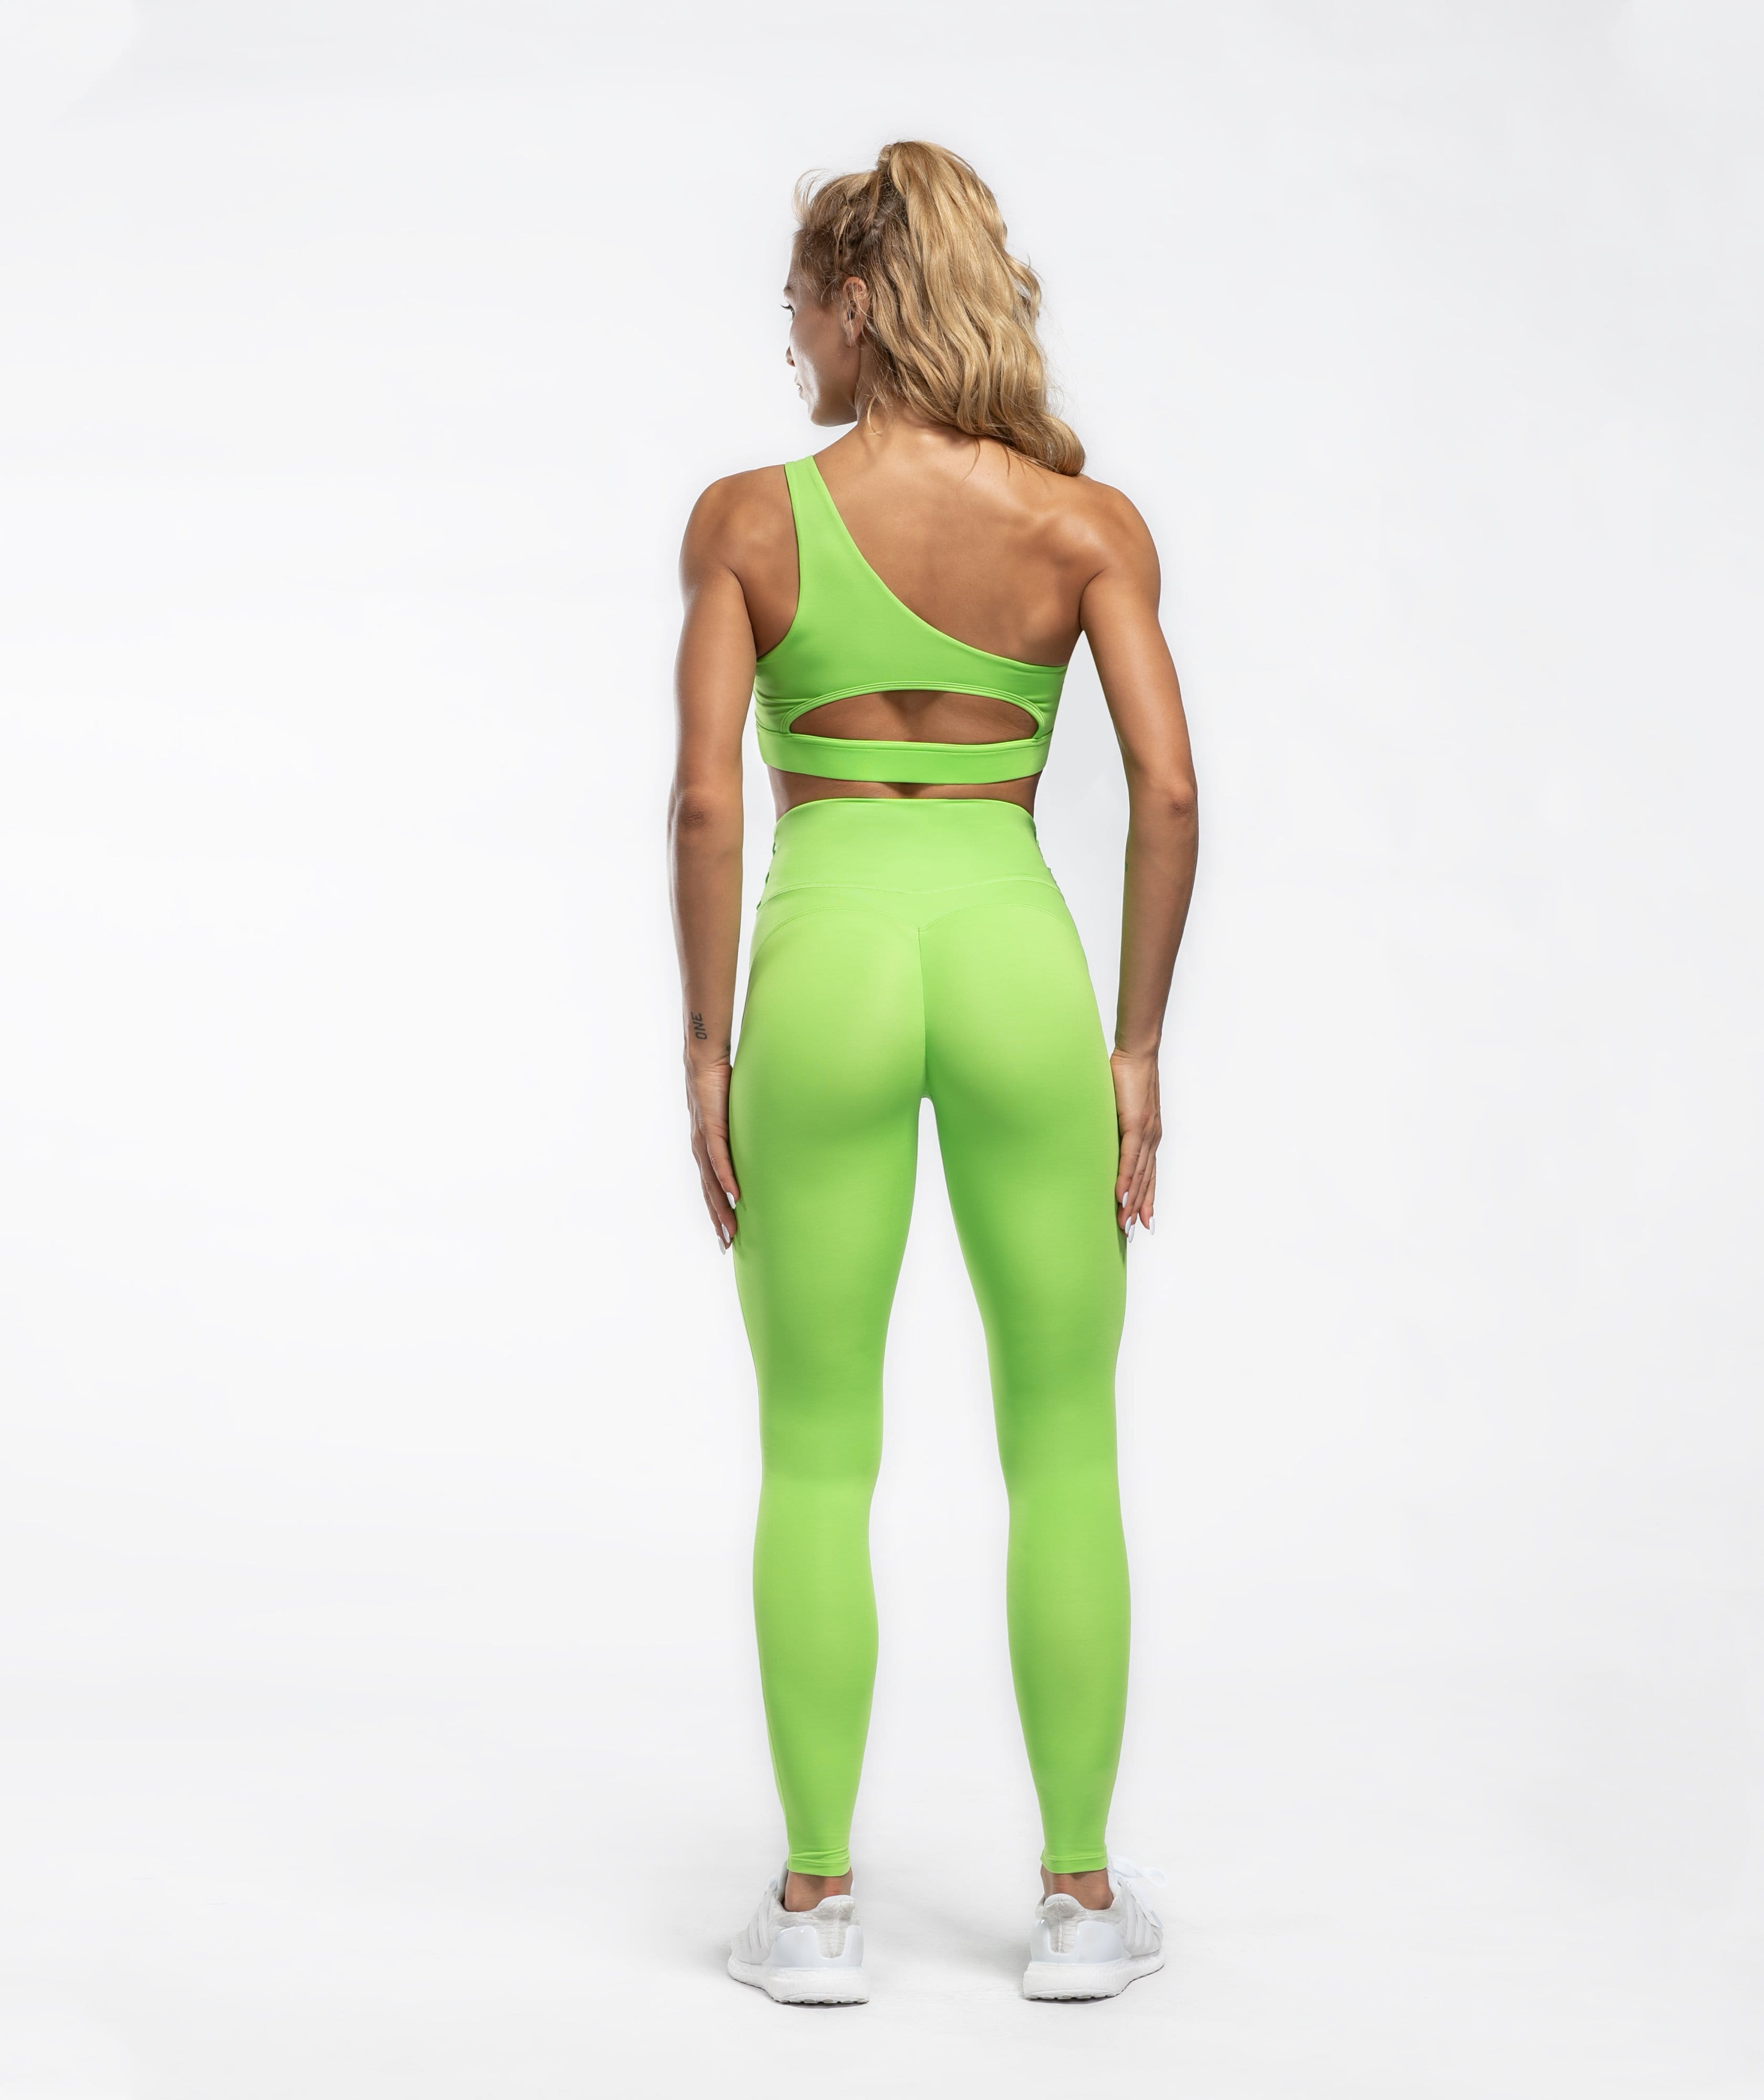 Honeypeach Sculpt Leggings - Green - Firm Abs Fitness